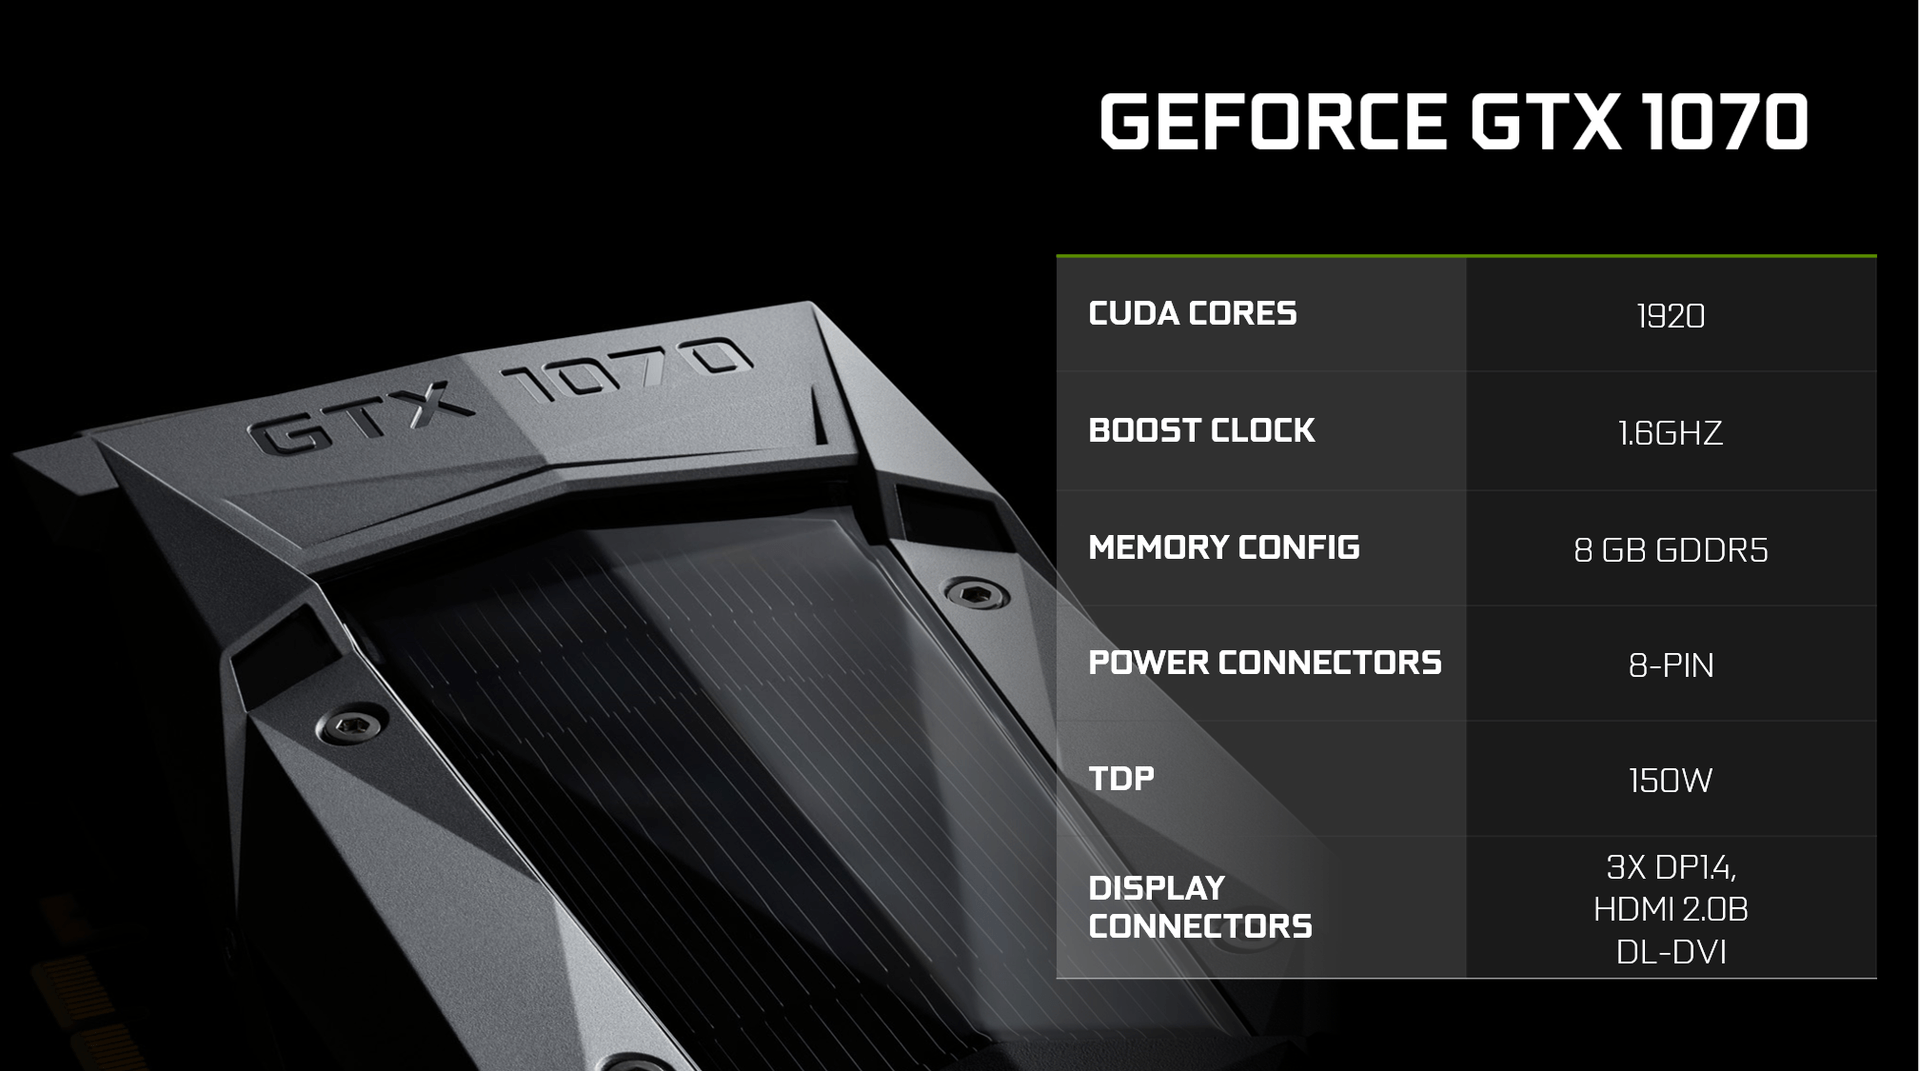 Nvidia Confirms GTX 1070 Specs -1920 CUDA Cores & 1 6Ghz Boost Clock